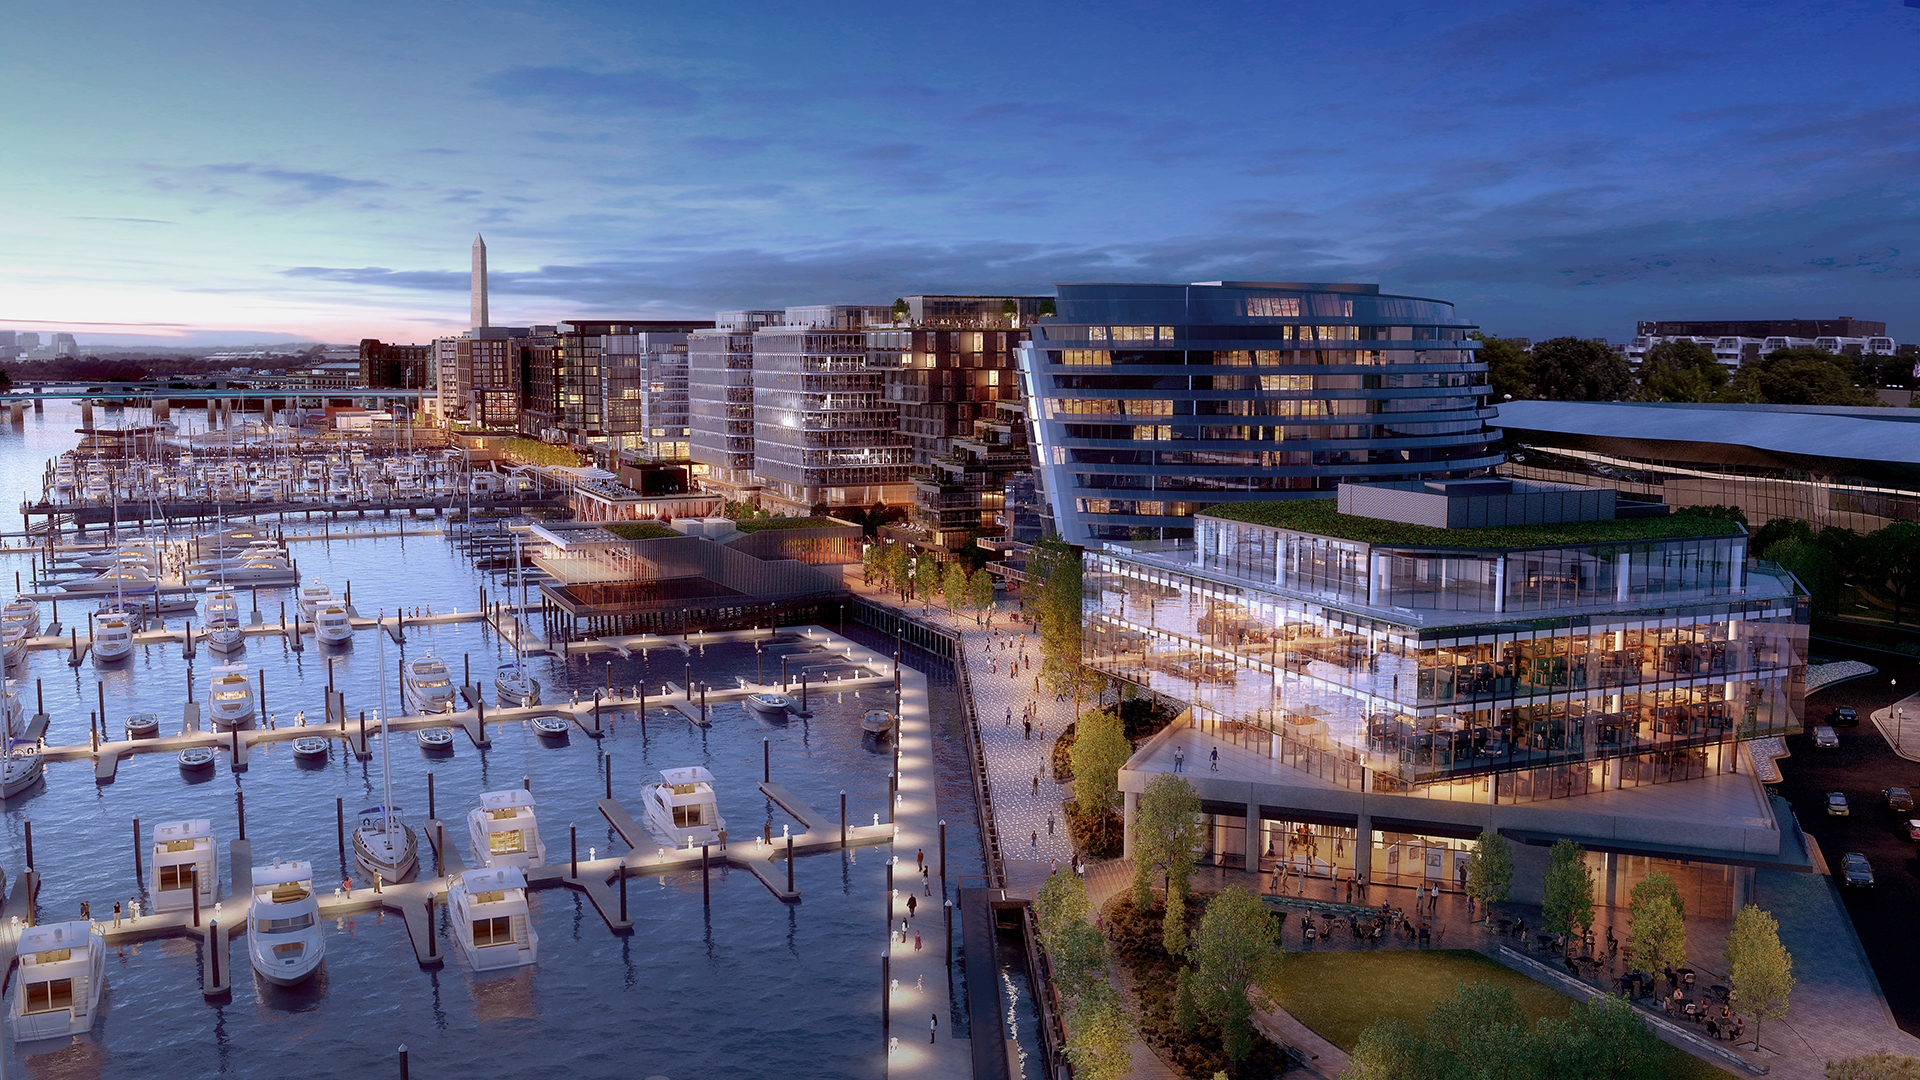 Projects e.r. bacon development district wharf